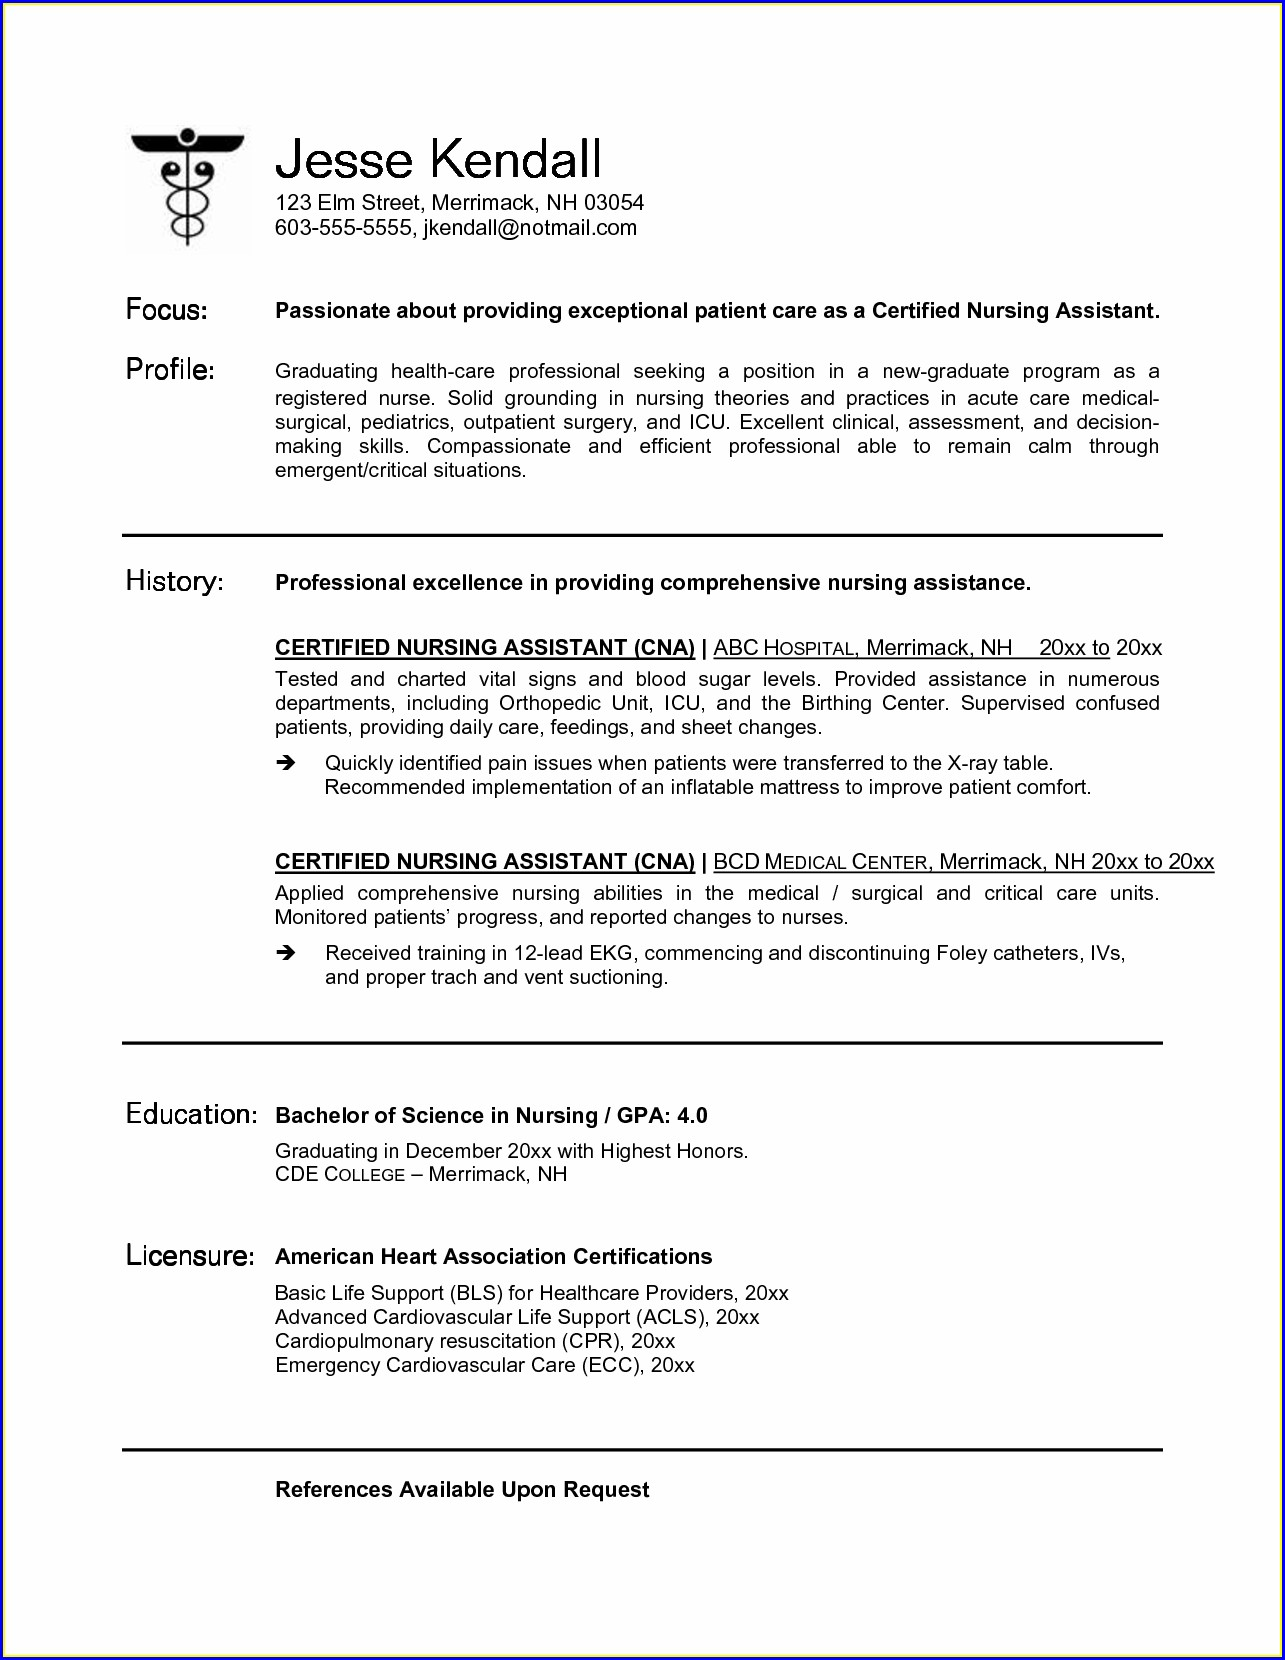 Resume For Cna Without Experience